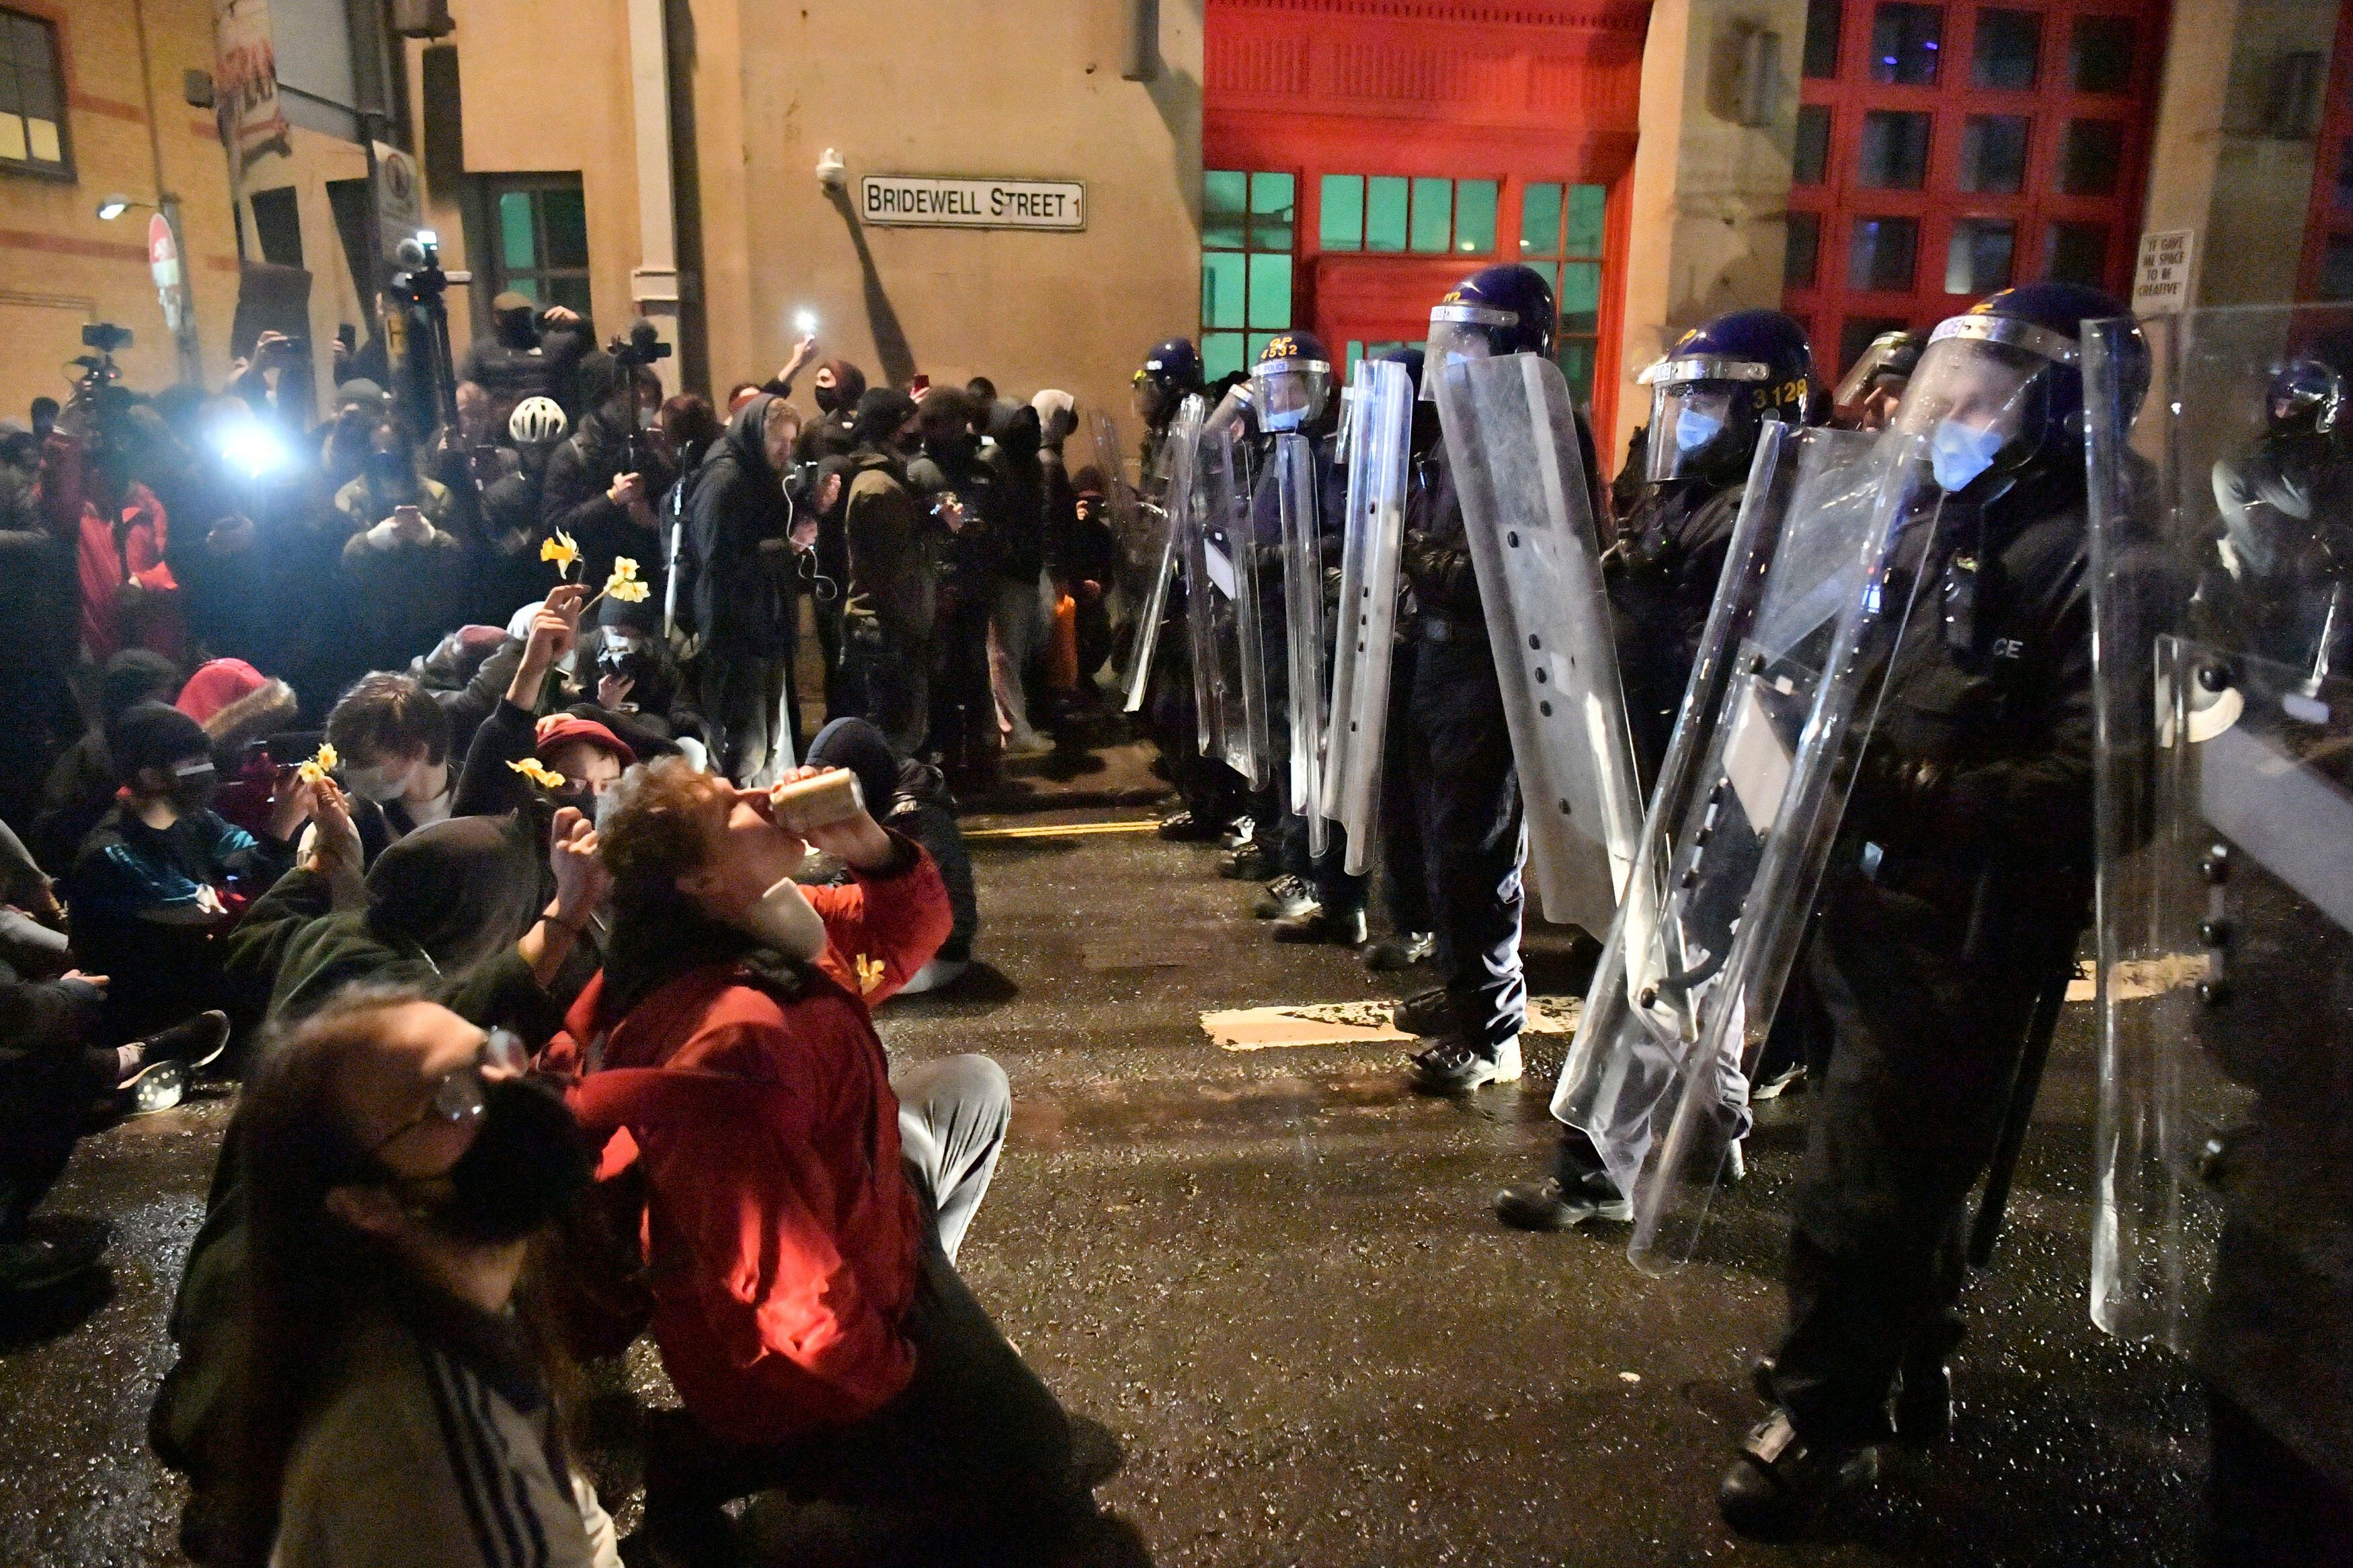 Hundreds rally in England and Wales over police legislation 2